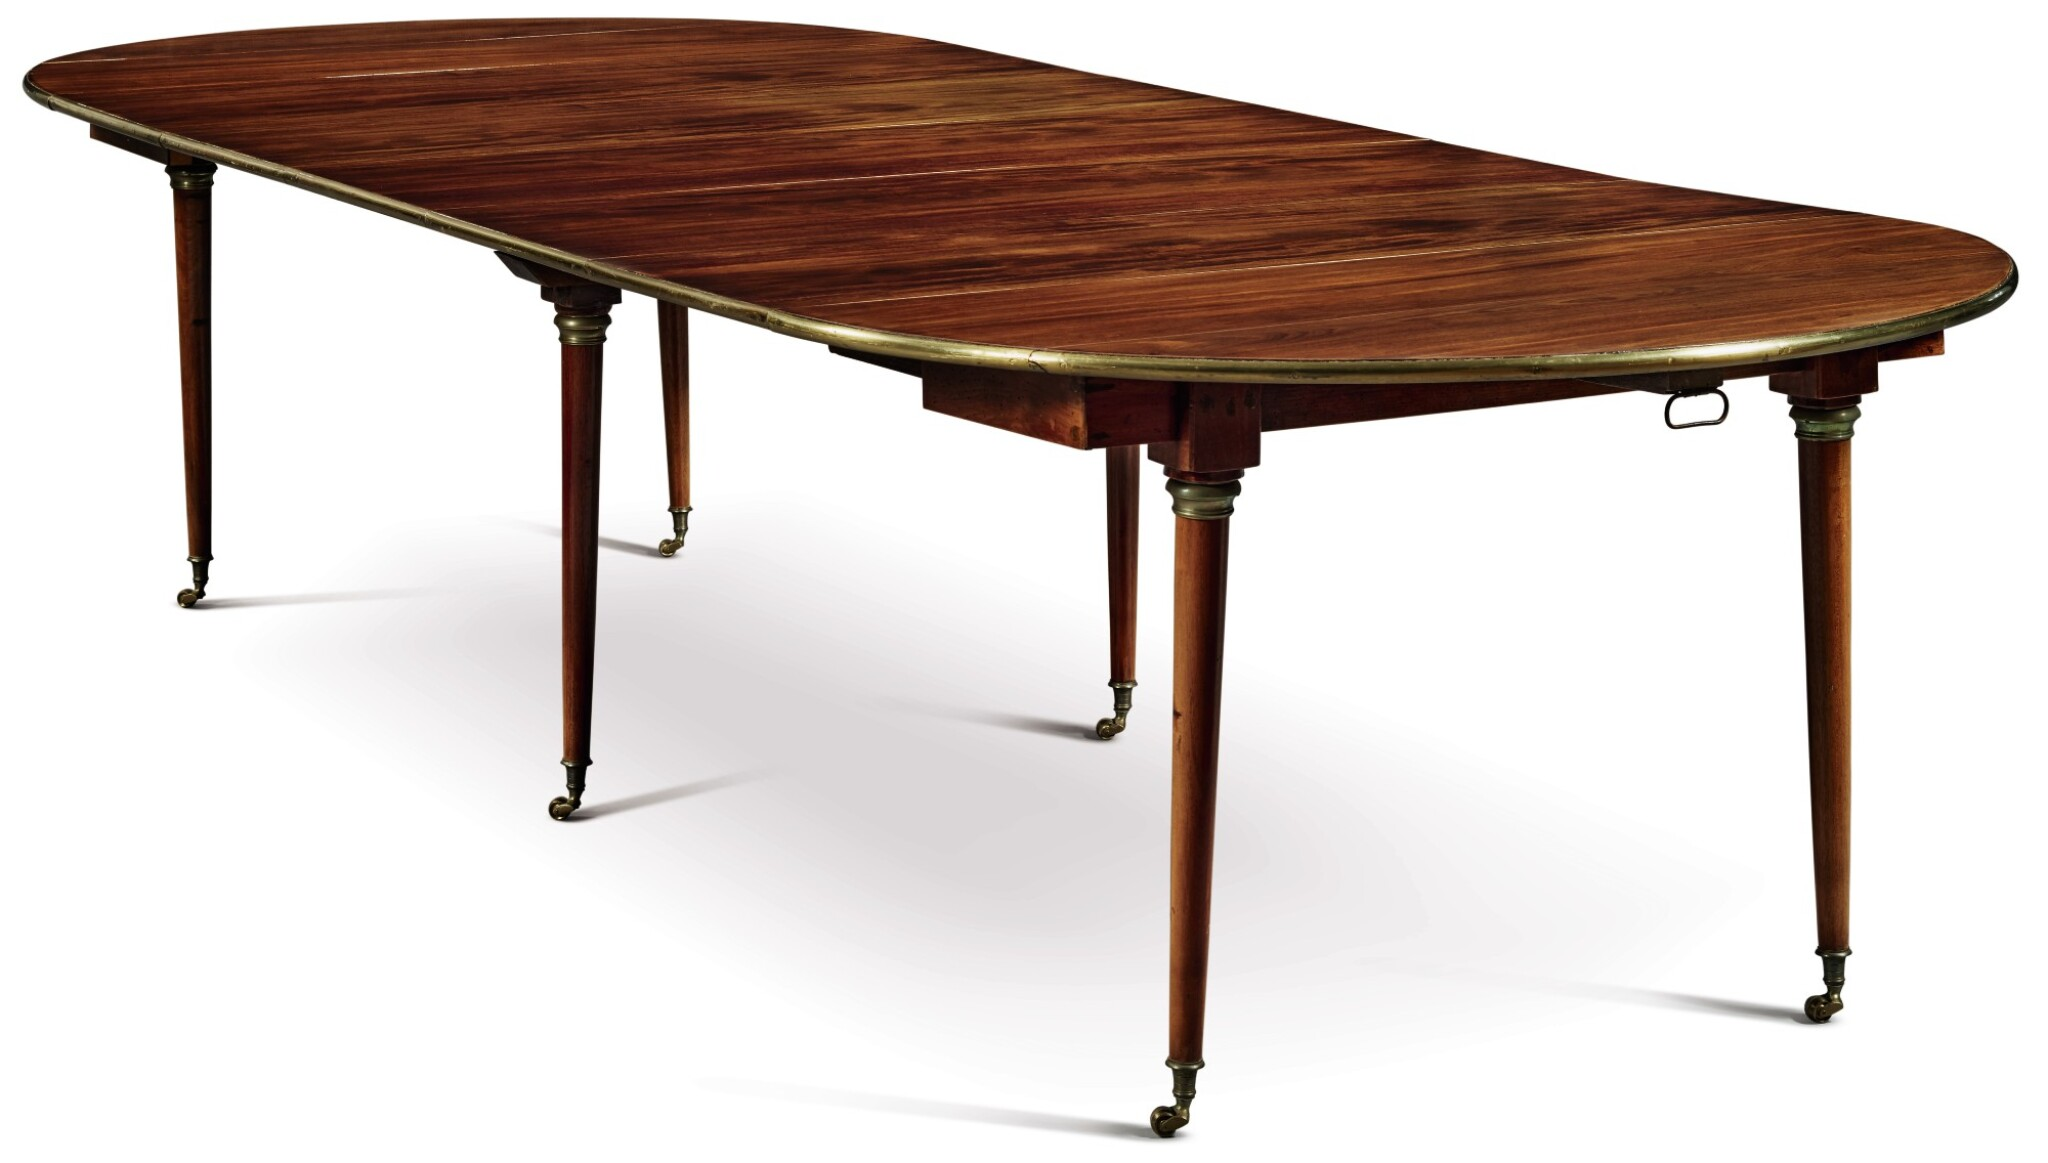 View full screen - View 1 of Lot 1529. DIRECTOIRE BRASS-MOUNTED MAHOGANY OVAL DINING TABLE WITH LATER LEAVES, EARLY 19TH CENTURY.